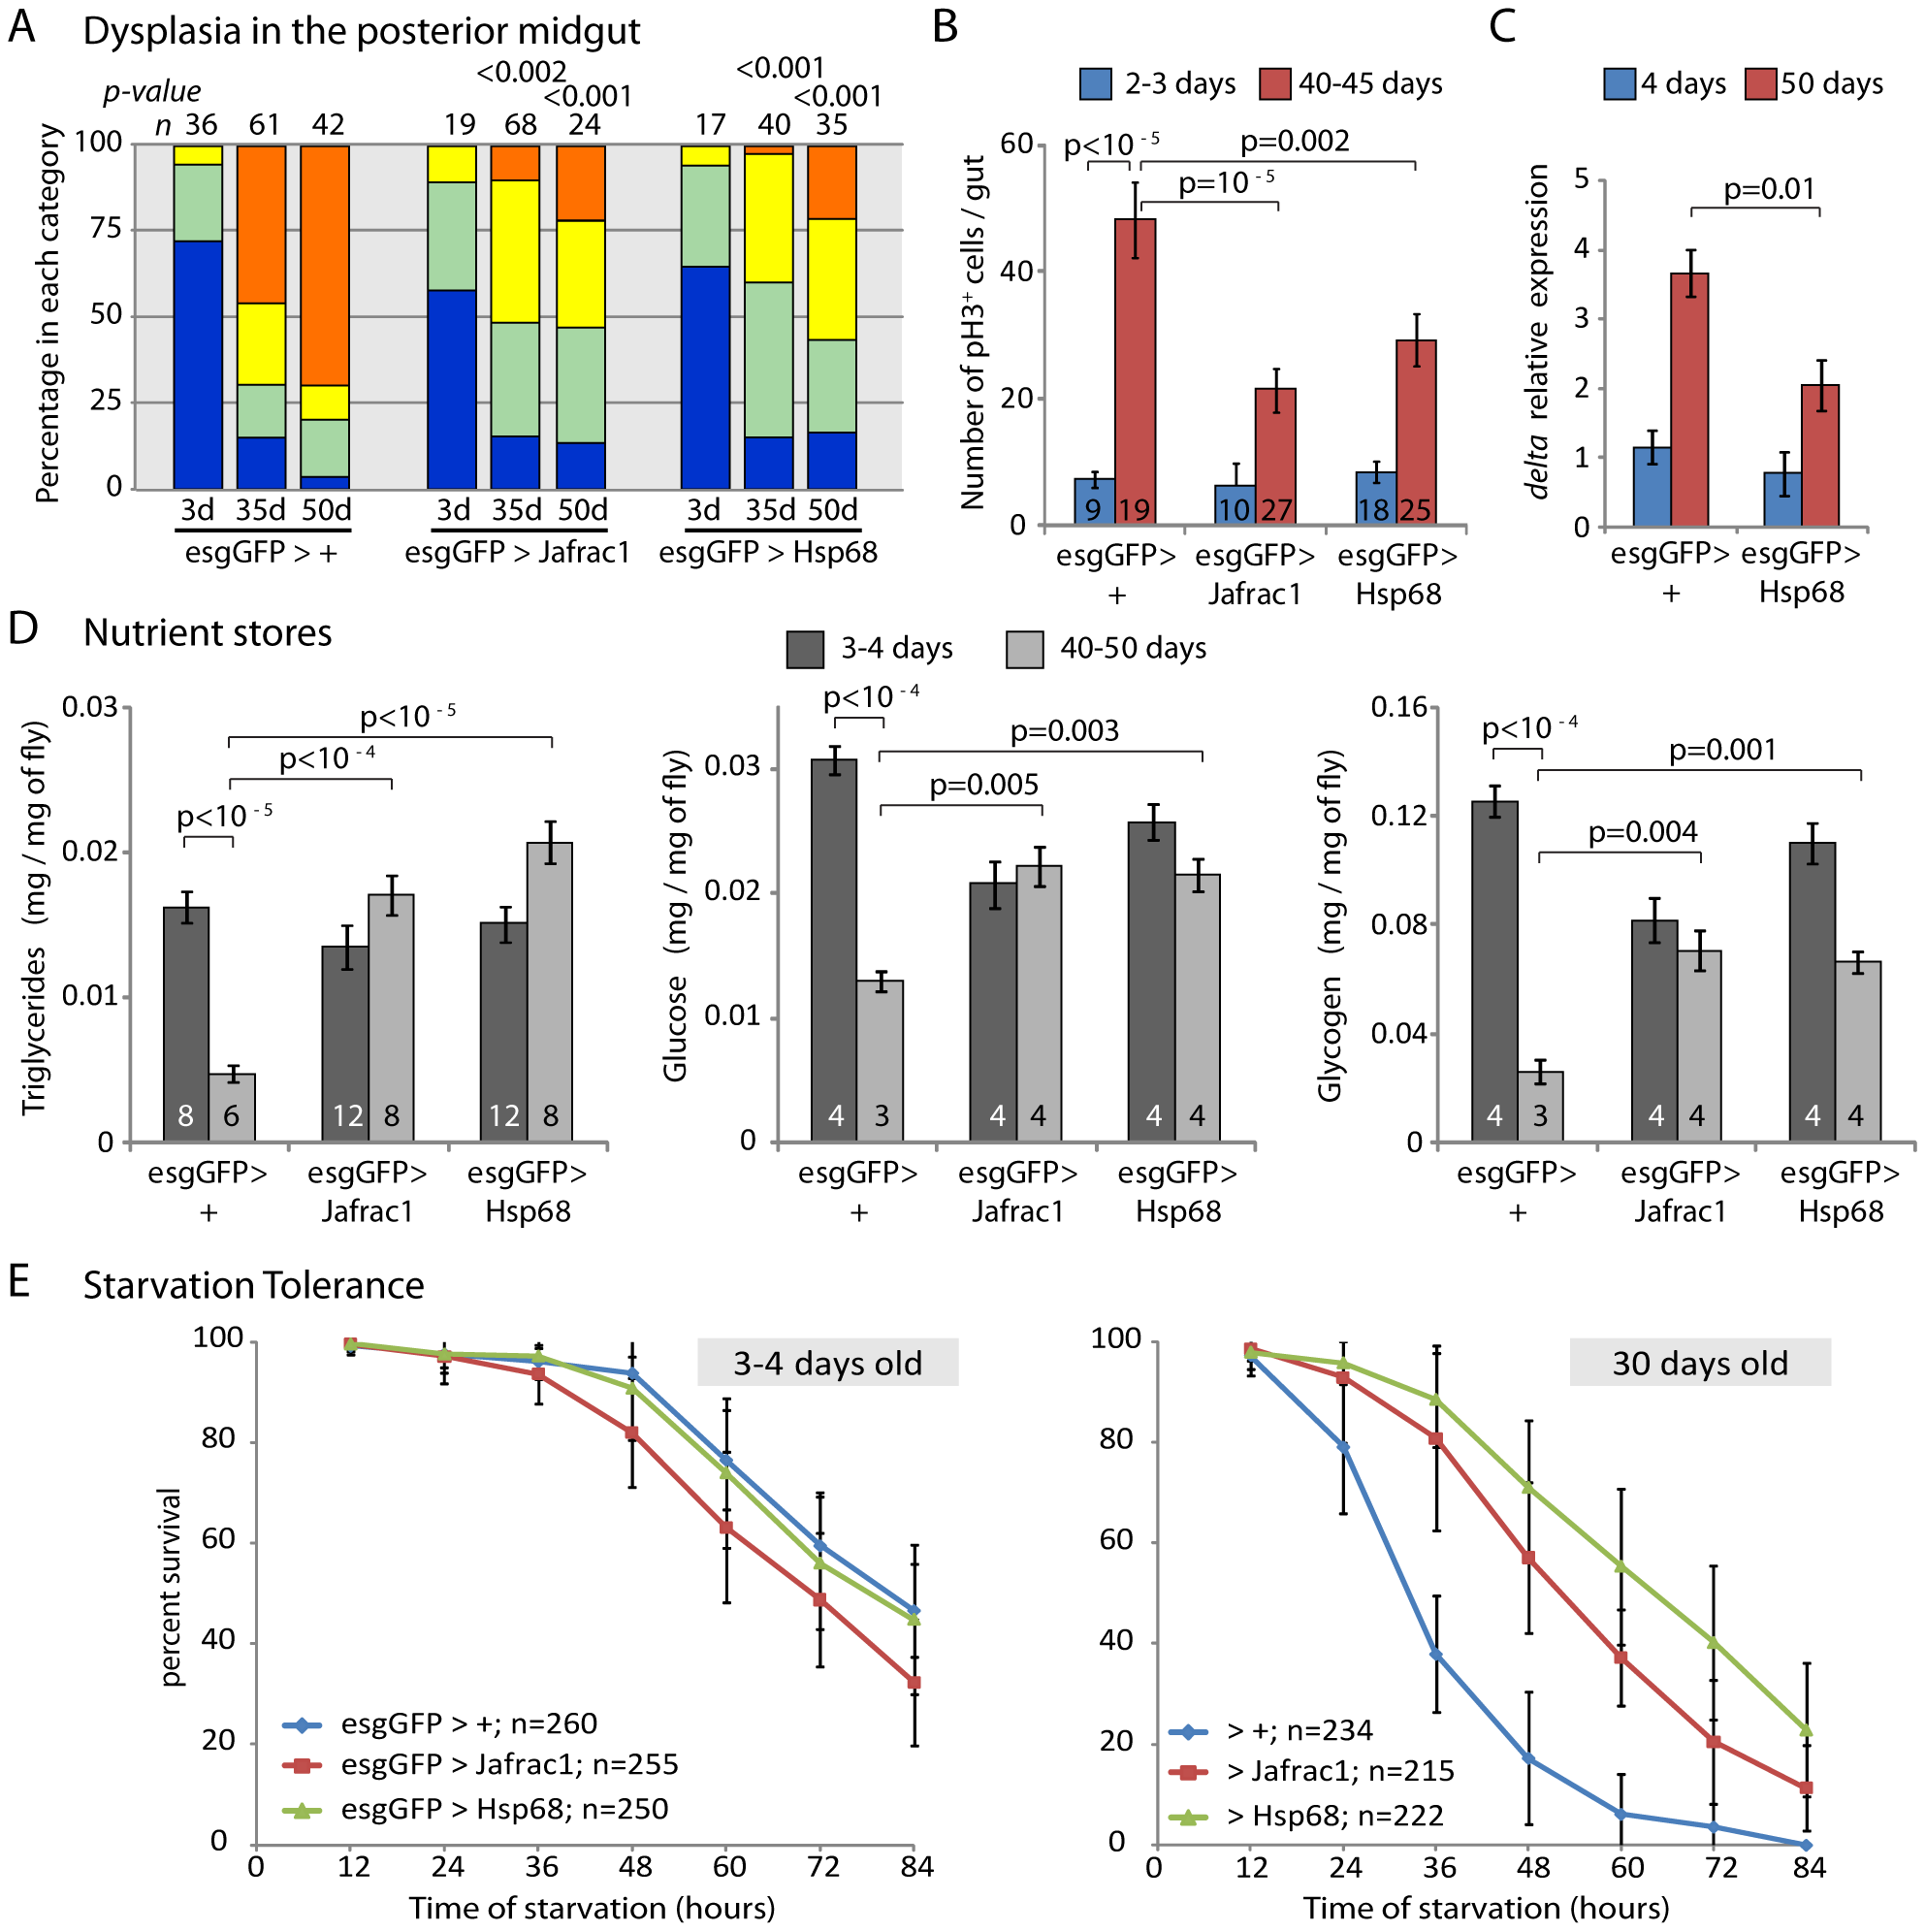 Overexpression of stress-protective genes in the somatic stem cell lineages delays intestinal degeneration and limits metabolic decay.